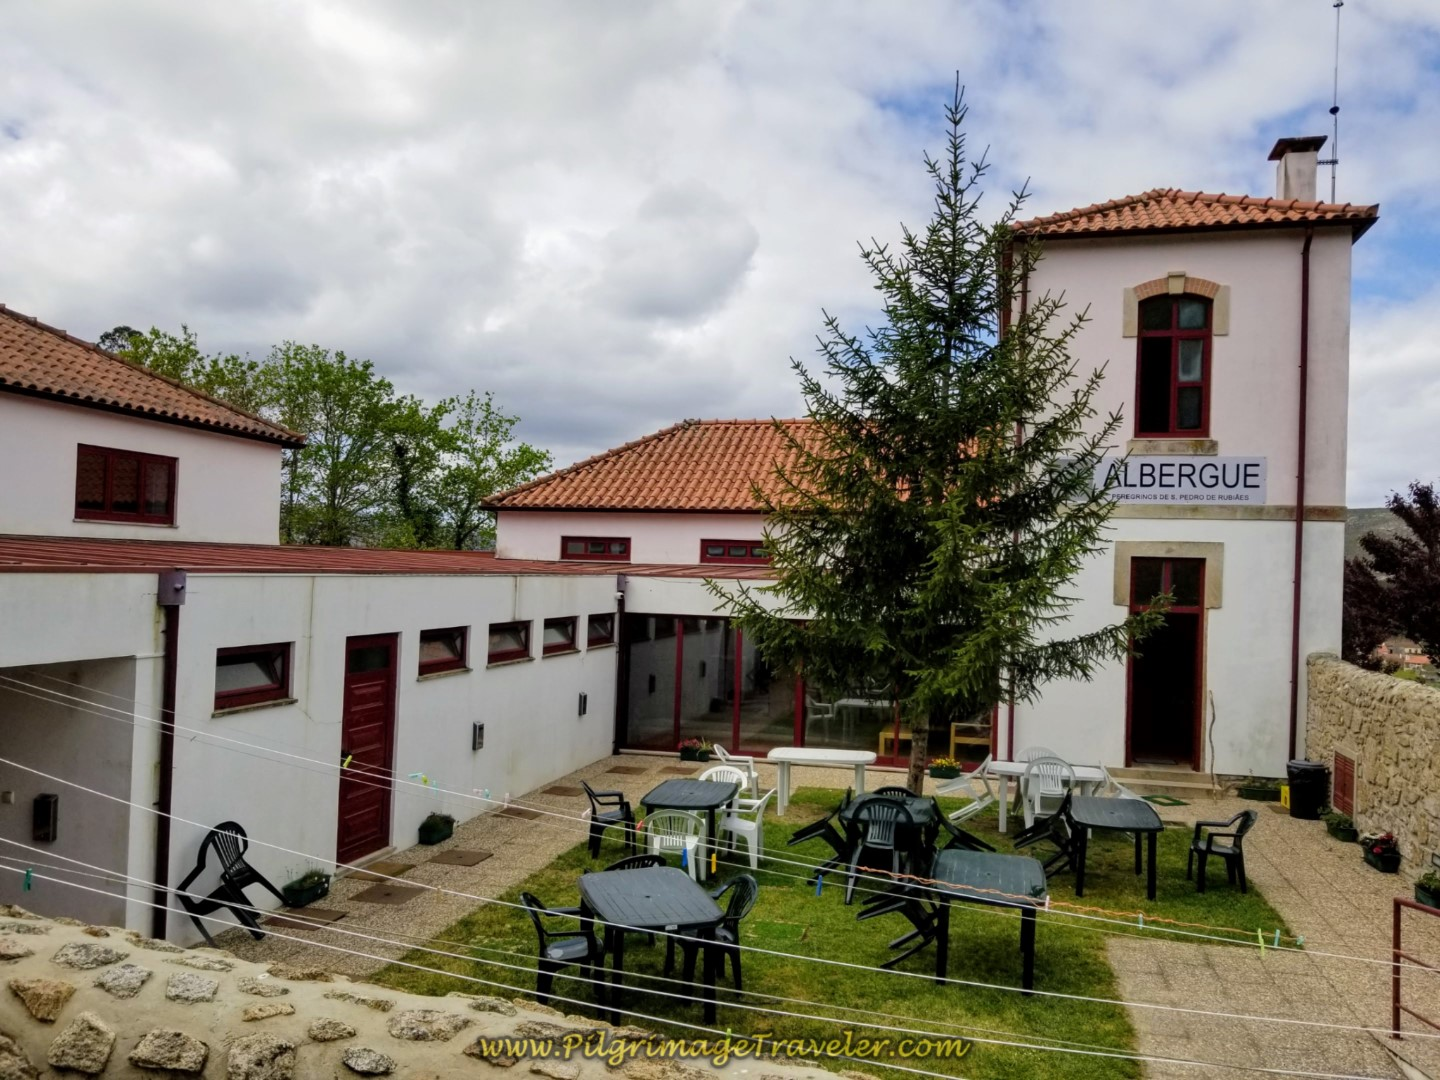 Albergue de Peregrinos de São Pedro de Rubiães on day eighteen on the Central Route of the Portuguese Camino